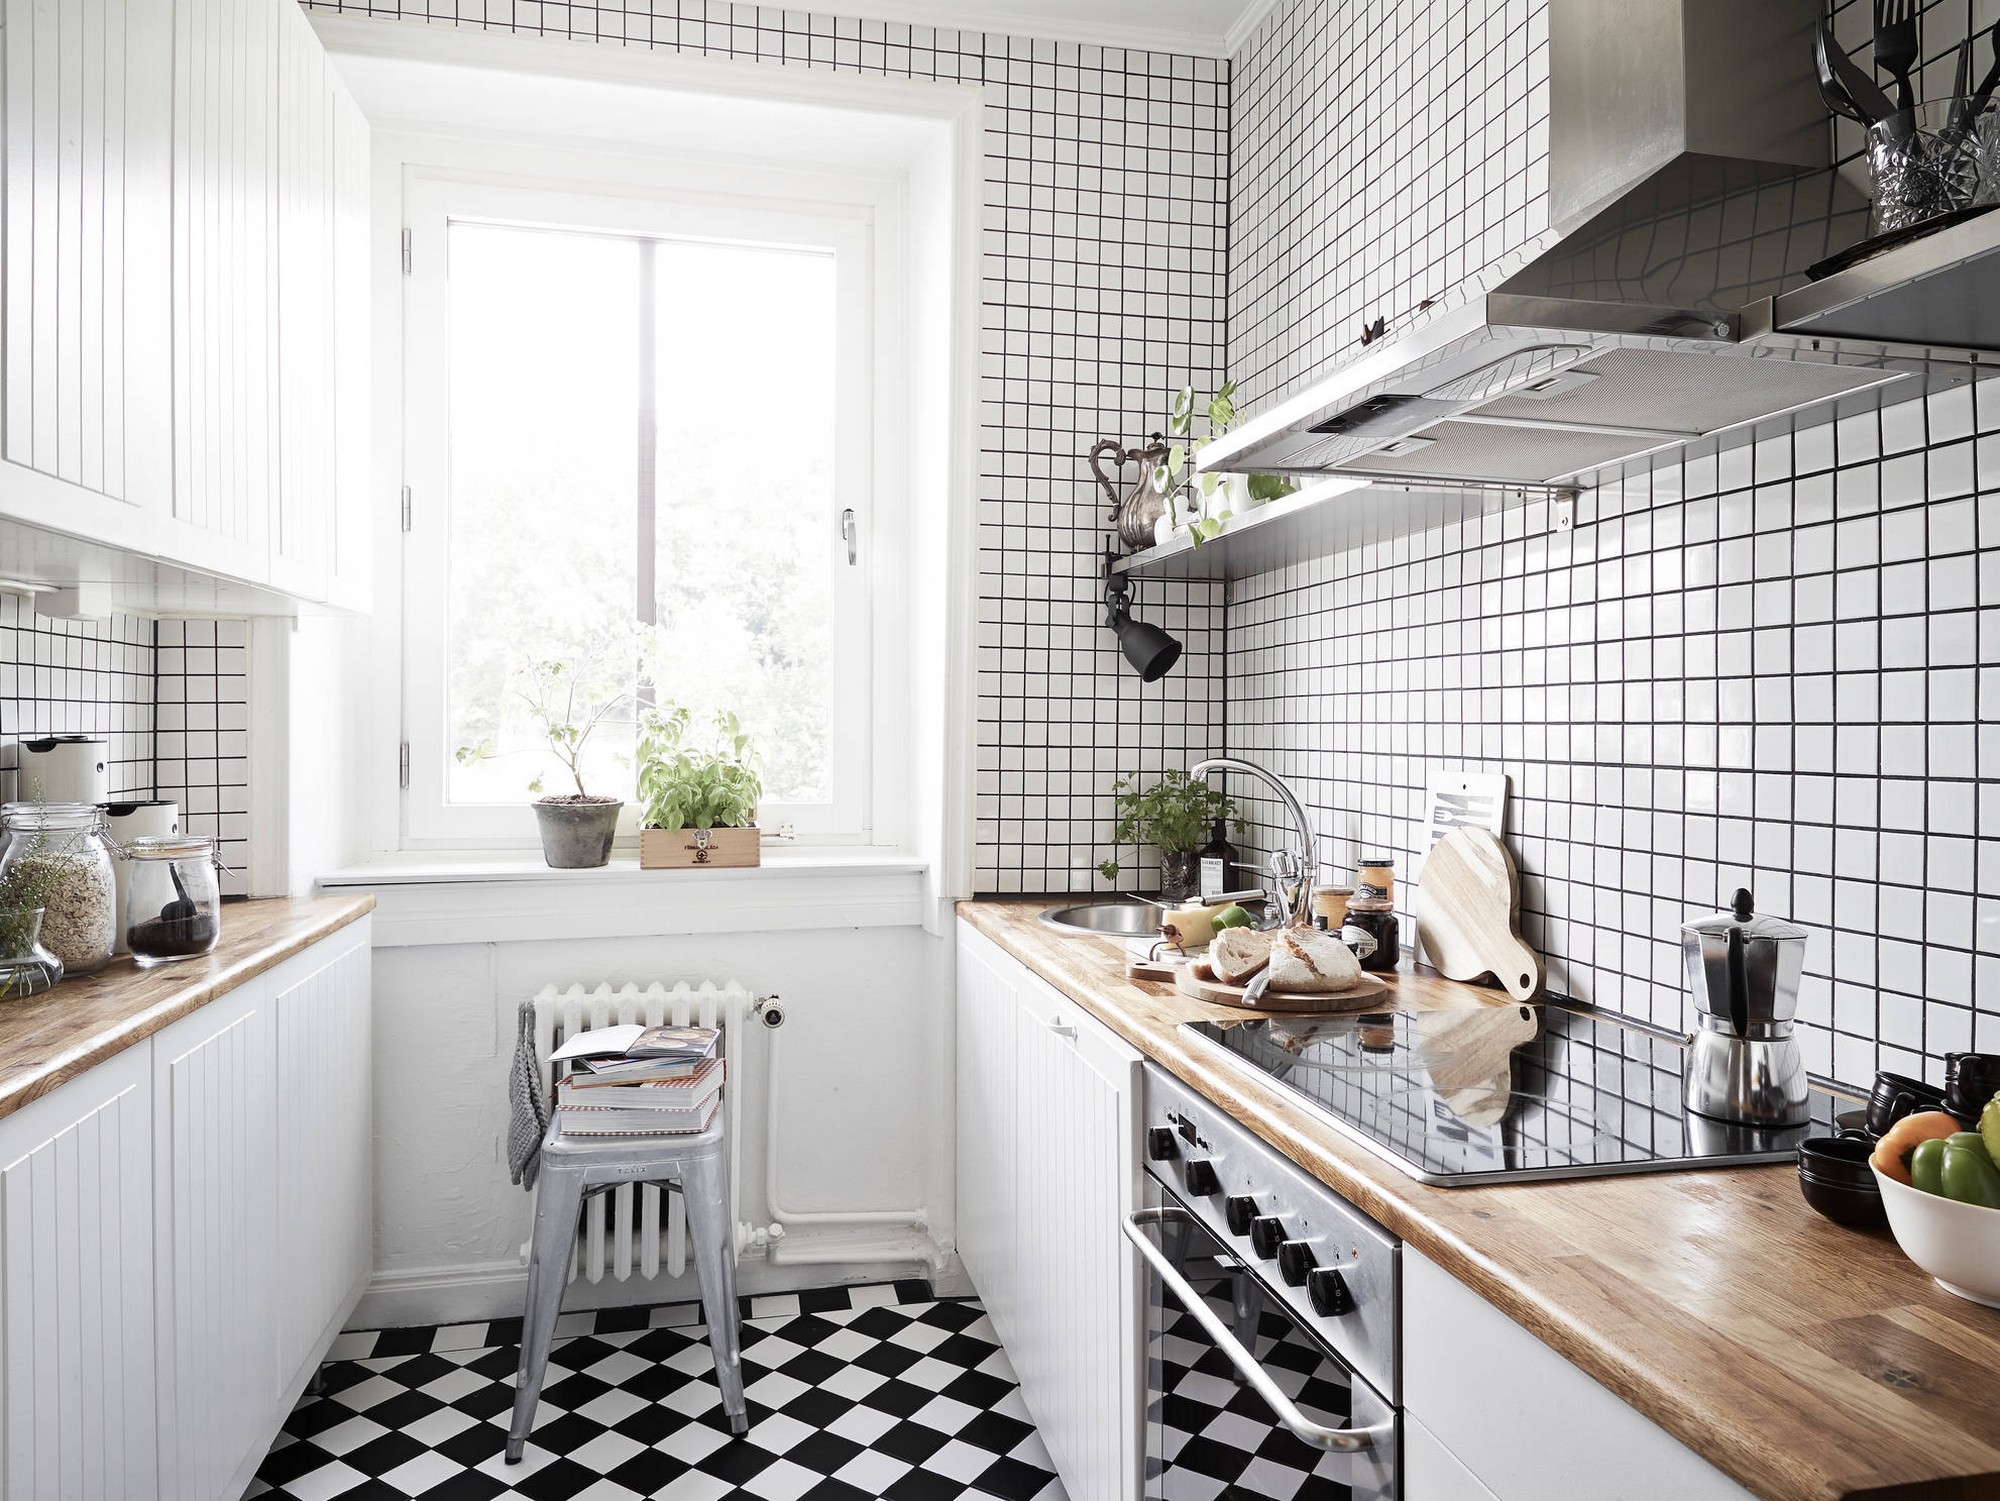 Kitchen wall tiles ideas with images Kitchen ideas with black and white tiles